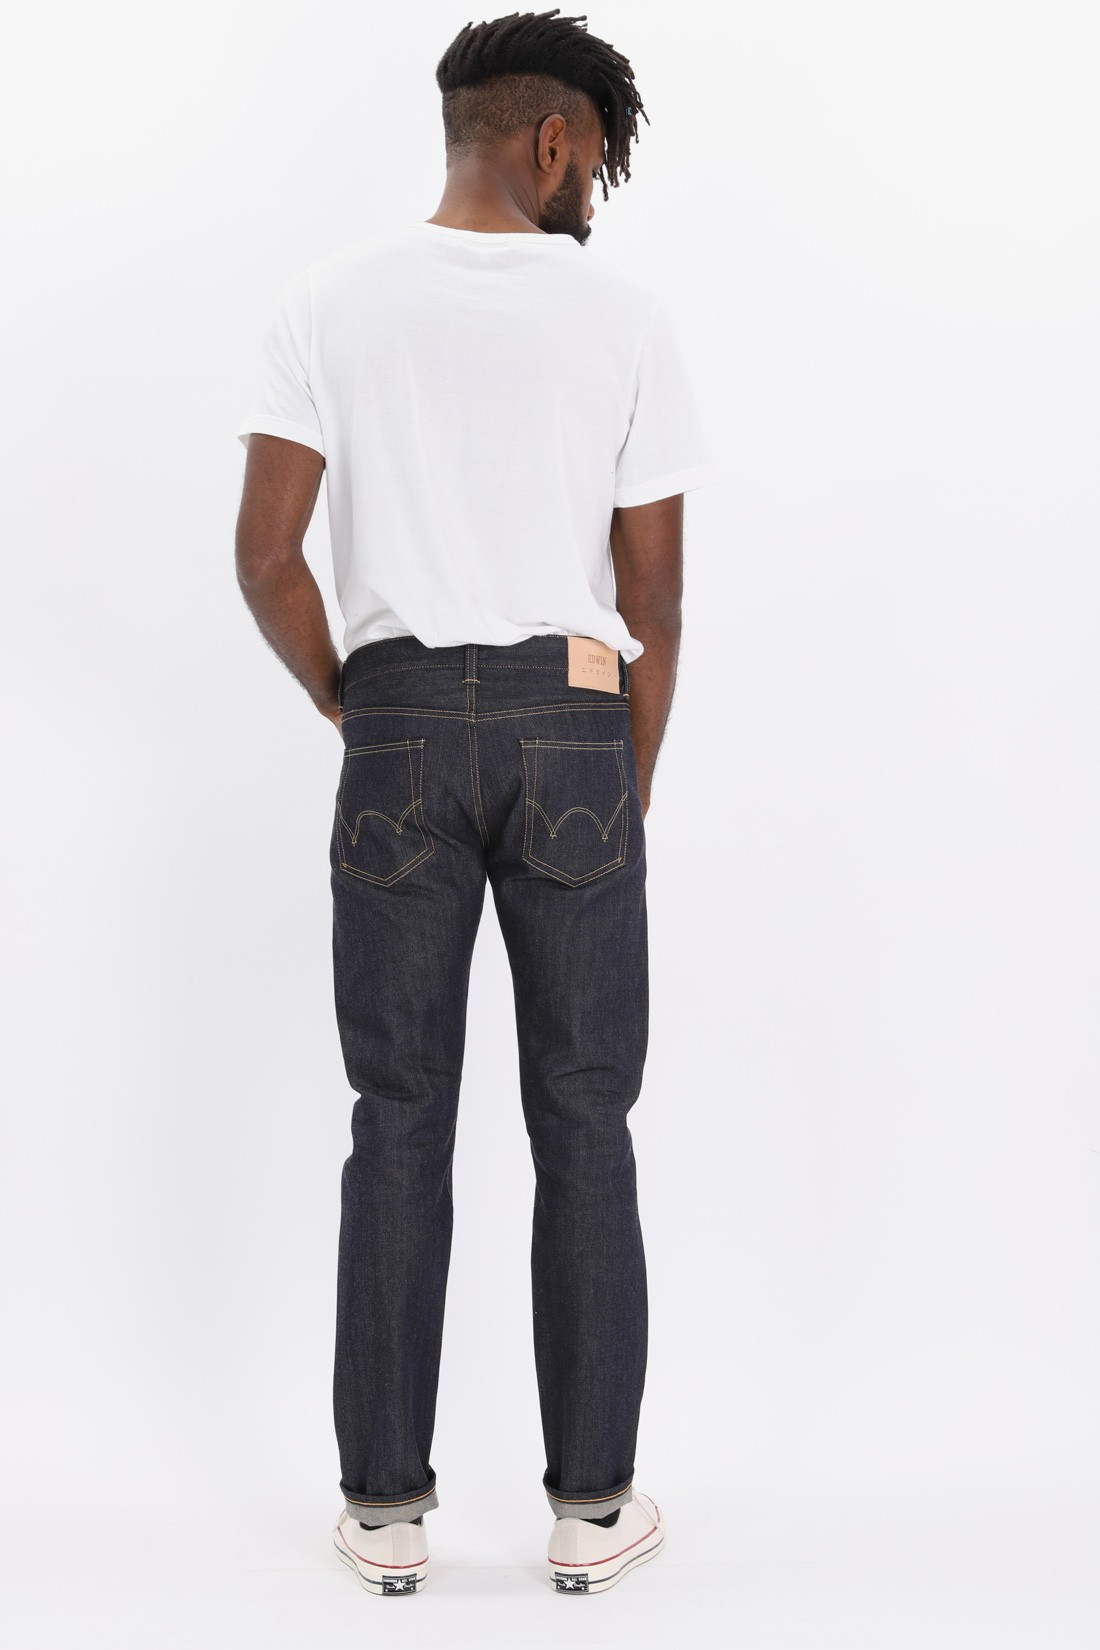 EDWIN / Ed-80 63 rainbow selvage Unwashed